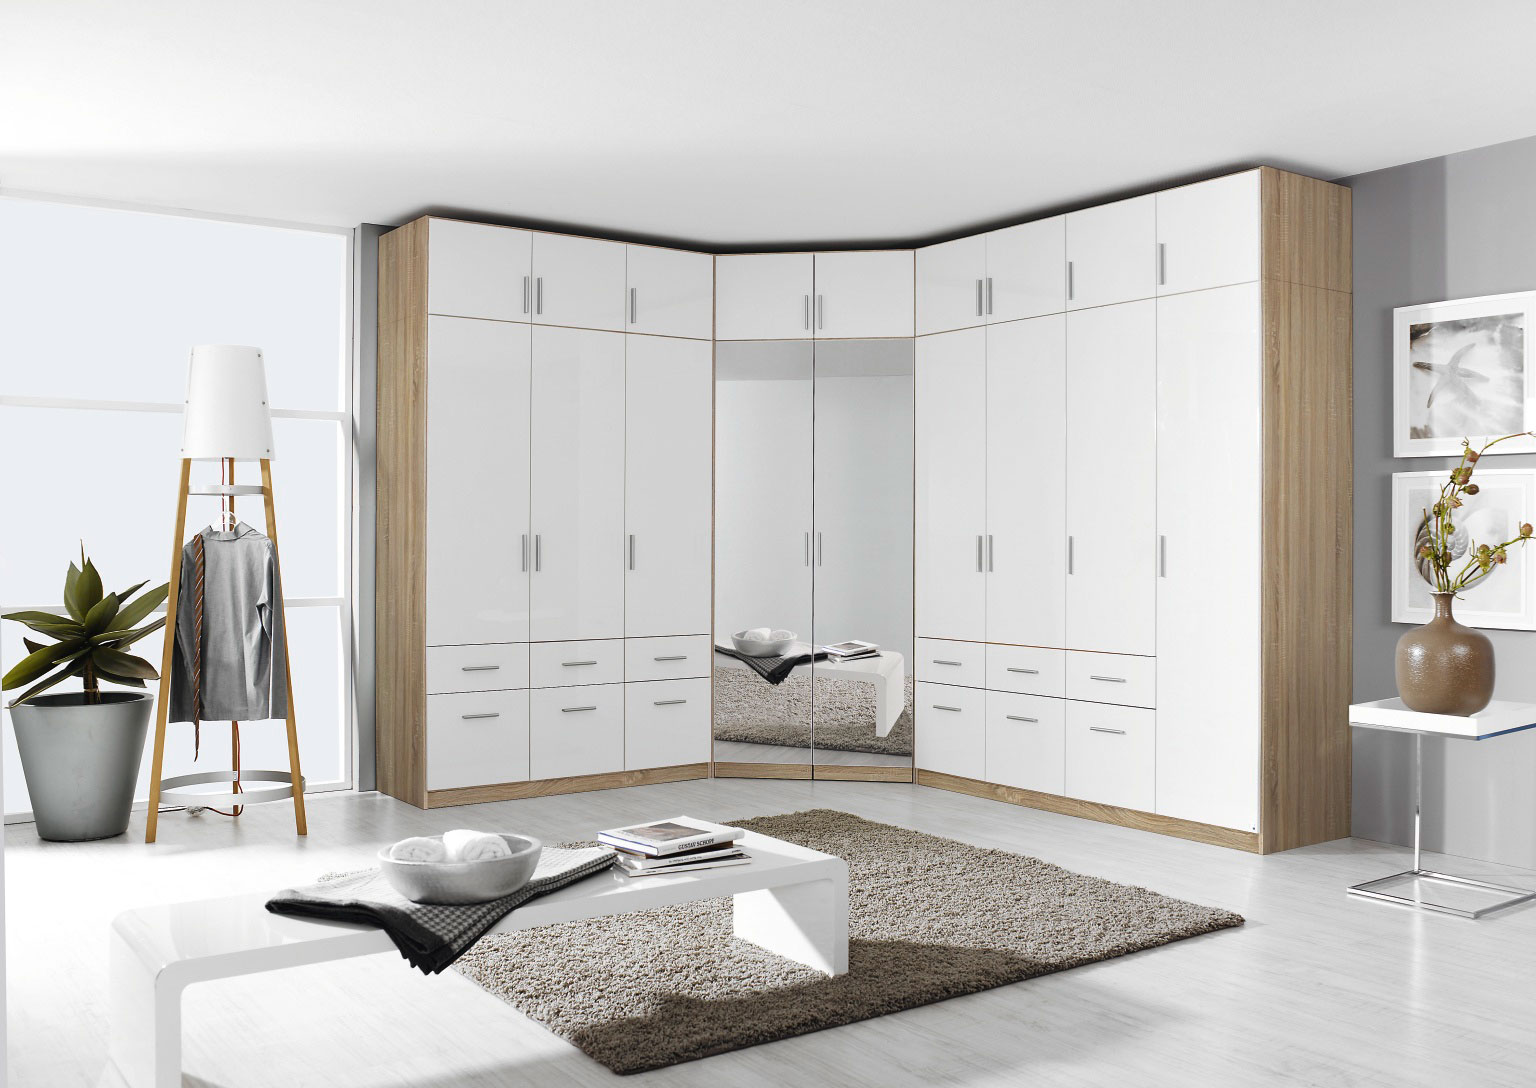 rauch celle eckschrank h he 197 cm m bel letz ihr. Black Bedroom Furniture Sets. Home Design Ideas